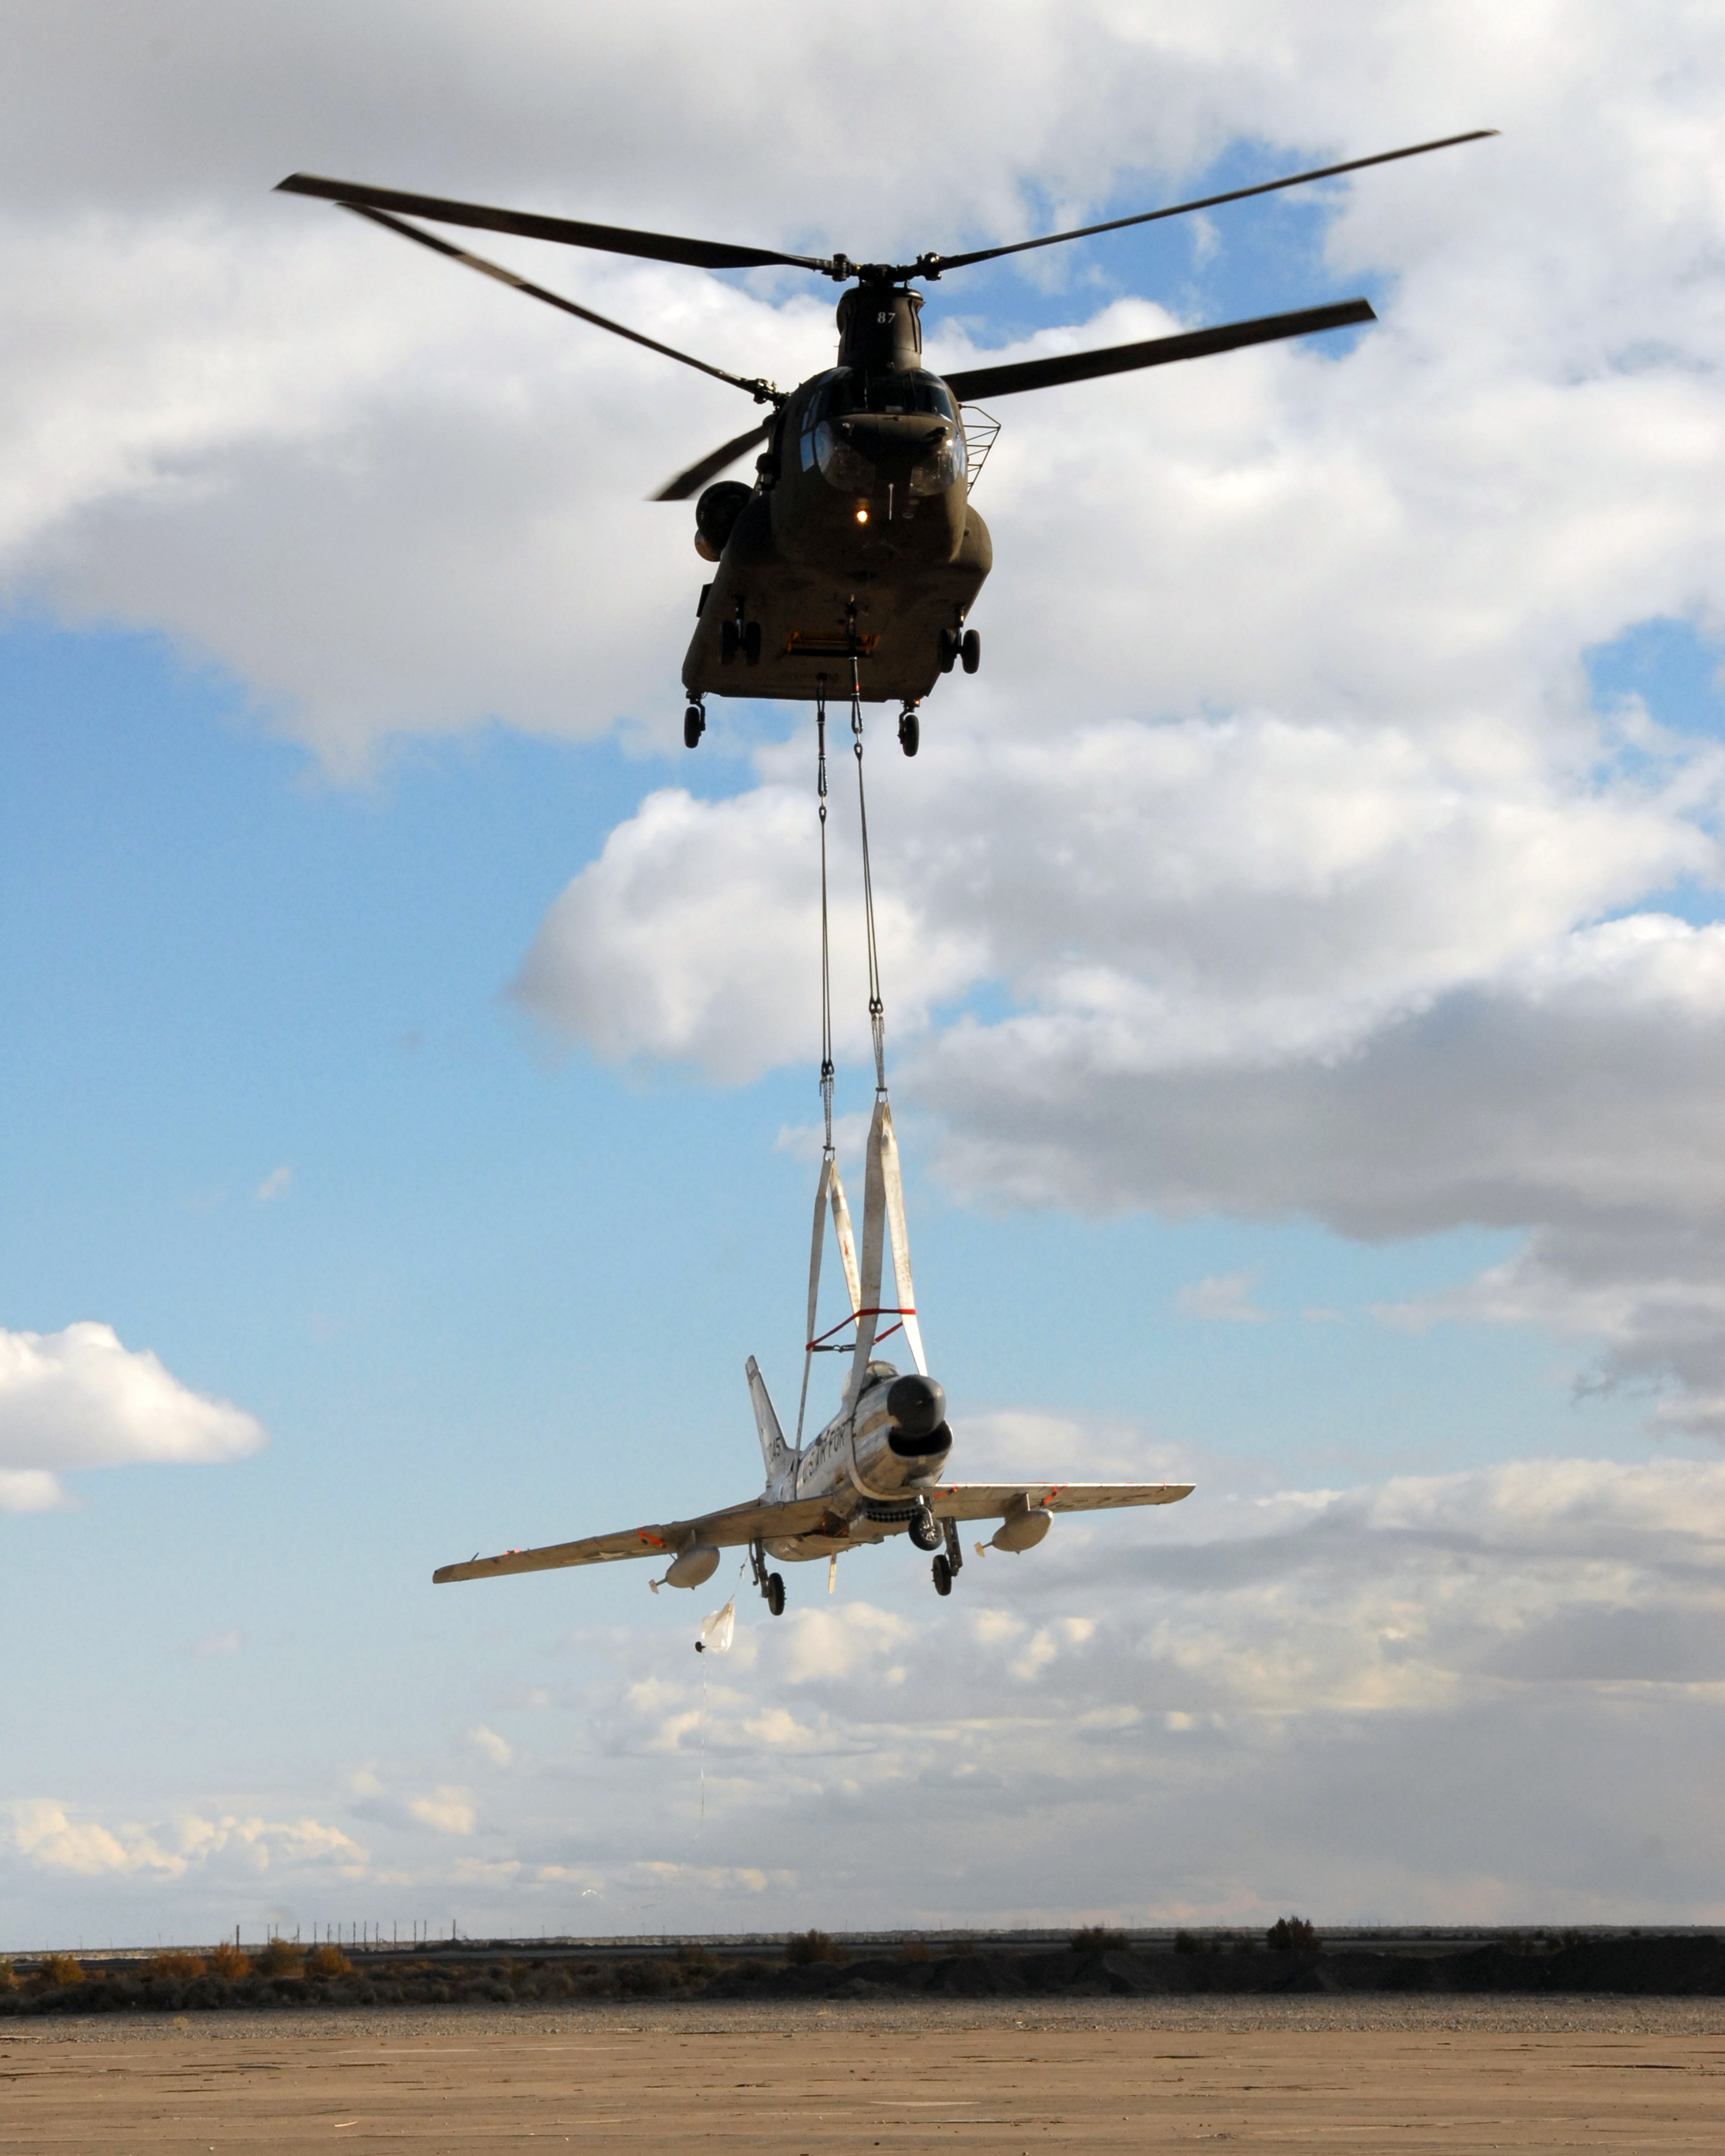 new army helicopter with File Ch 47 Lifting F 86l At Wendover Utah 2008 on Mi 24 also Israeli air force ah64 apache peten releasing furthermore fvap likewise IMG 7430 e3 together with Ch 53 gallery.